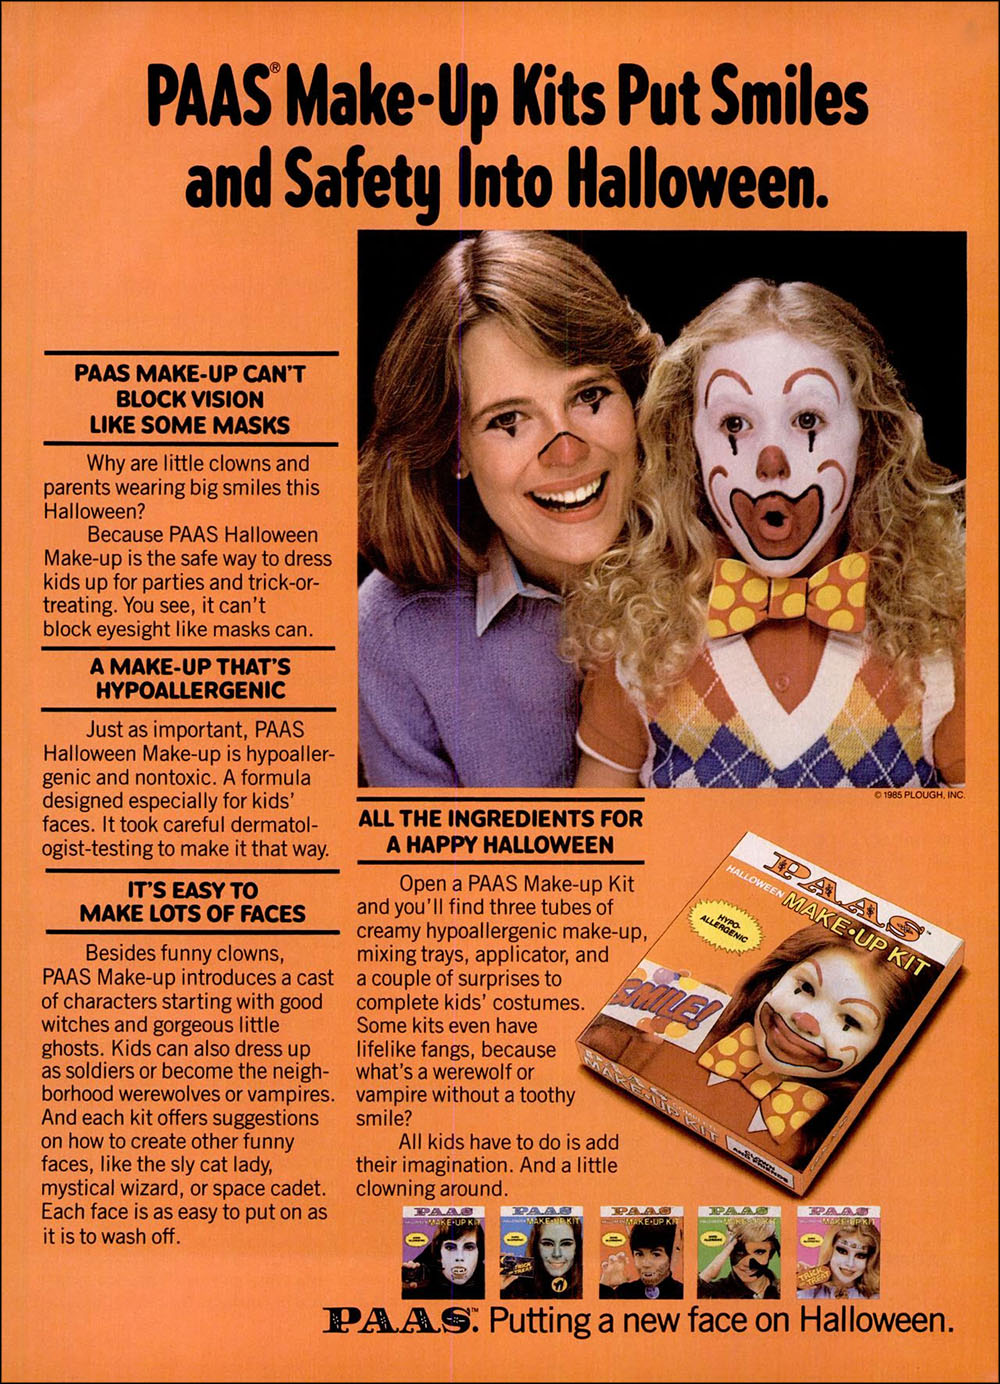 Vintage Halloween ad (PAAS Make-Up Kits, 1986)